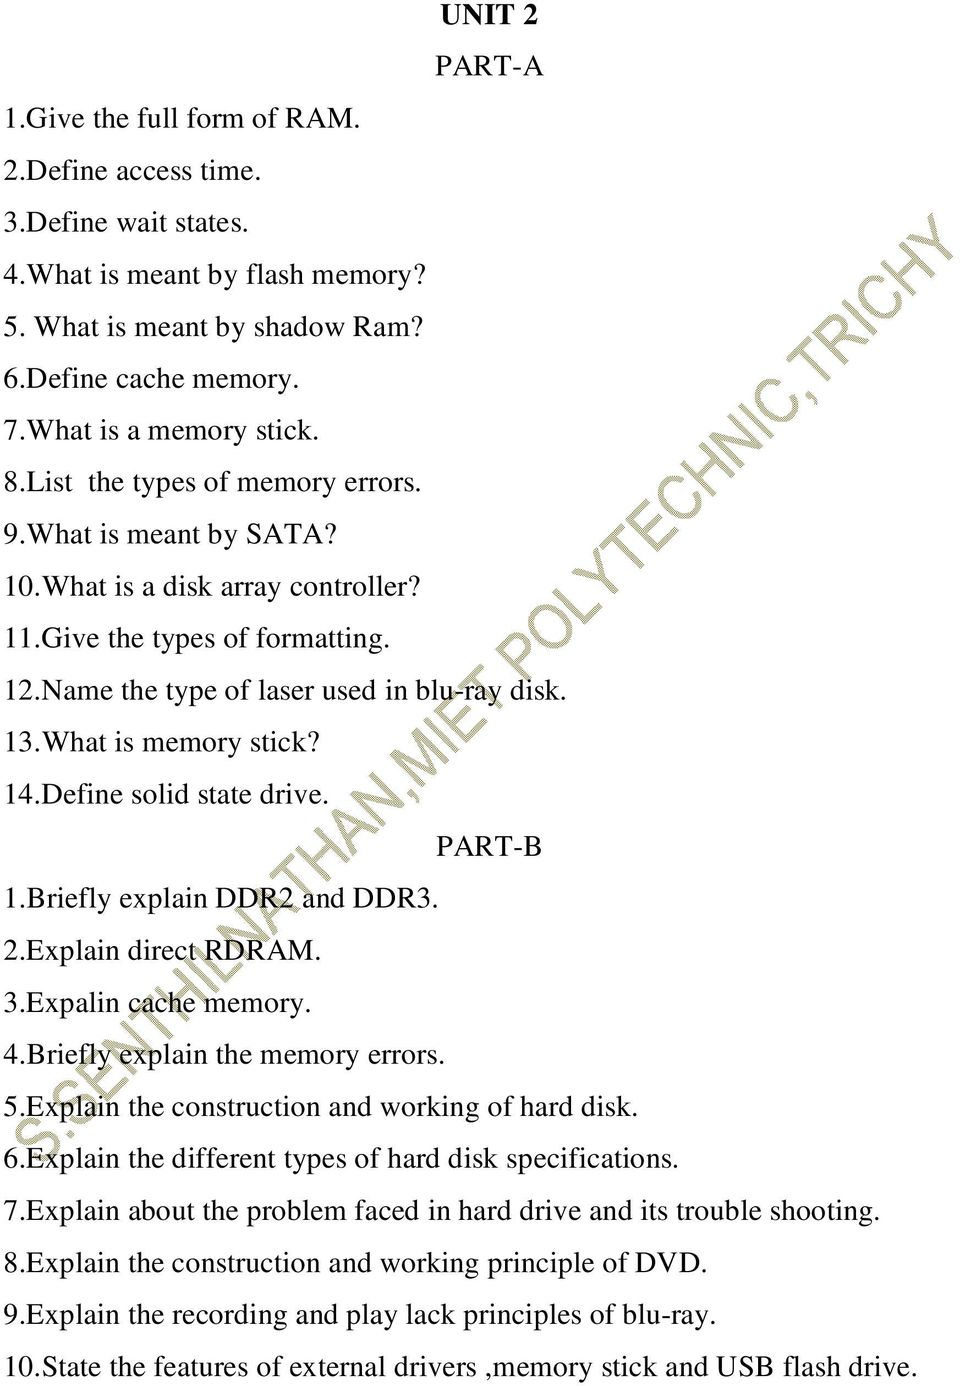 14.Define solid state drive. 1.Briefly explain DDR2 and DDR3. 2.Explain direct RDRAM. 3.Expalin cache memory. 4.Briefly explain the memory errors. 5.Explain the construction and working of hard disk.